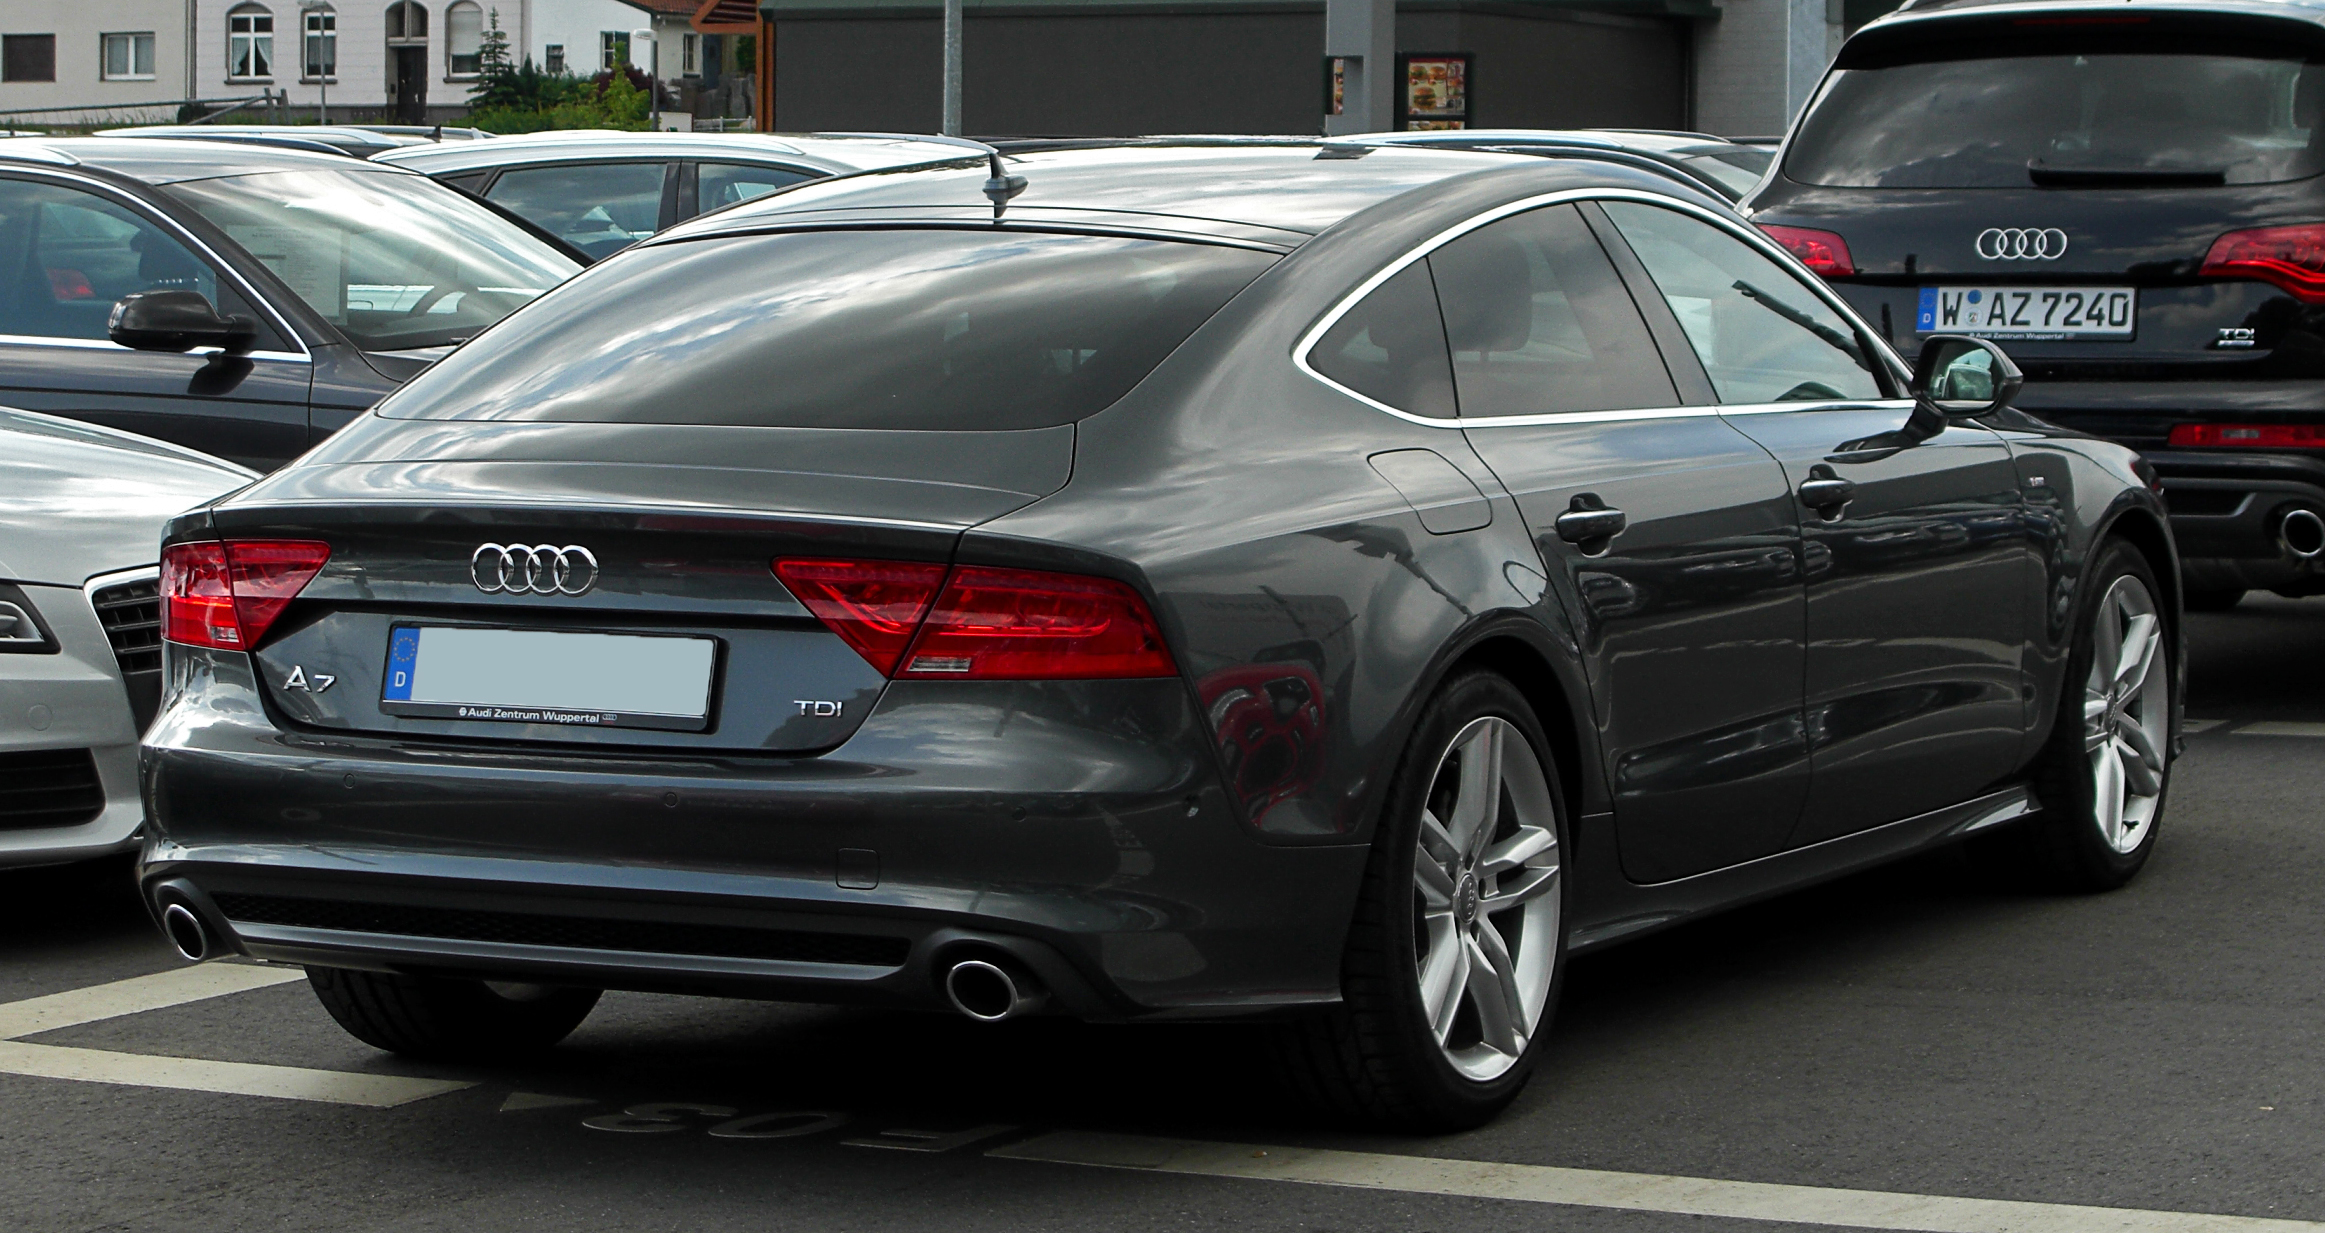 file audi a7 sportback 3 0 tdi quattro s line heckansicht 15 mai 2011. Black Bedroom Furniture Sets. Home Design Ideas